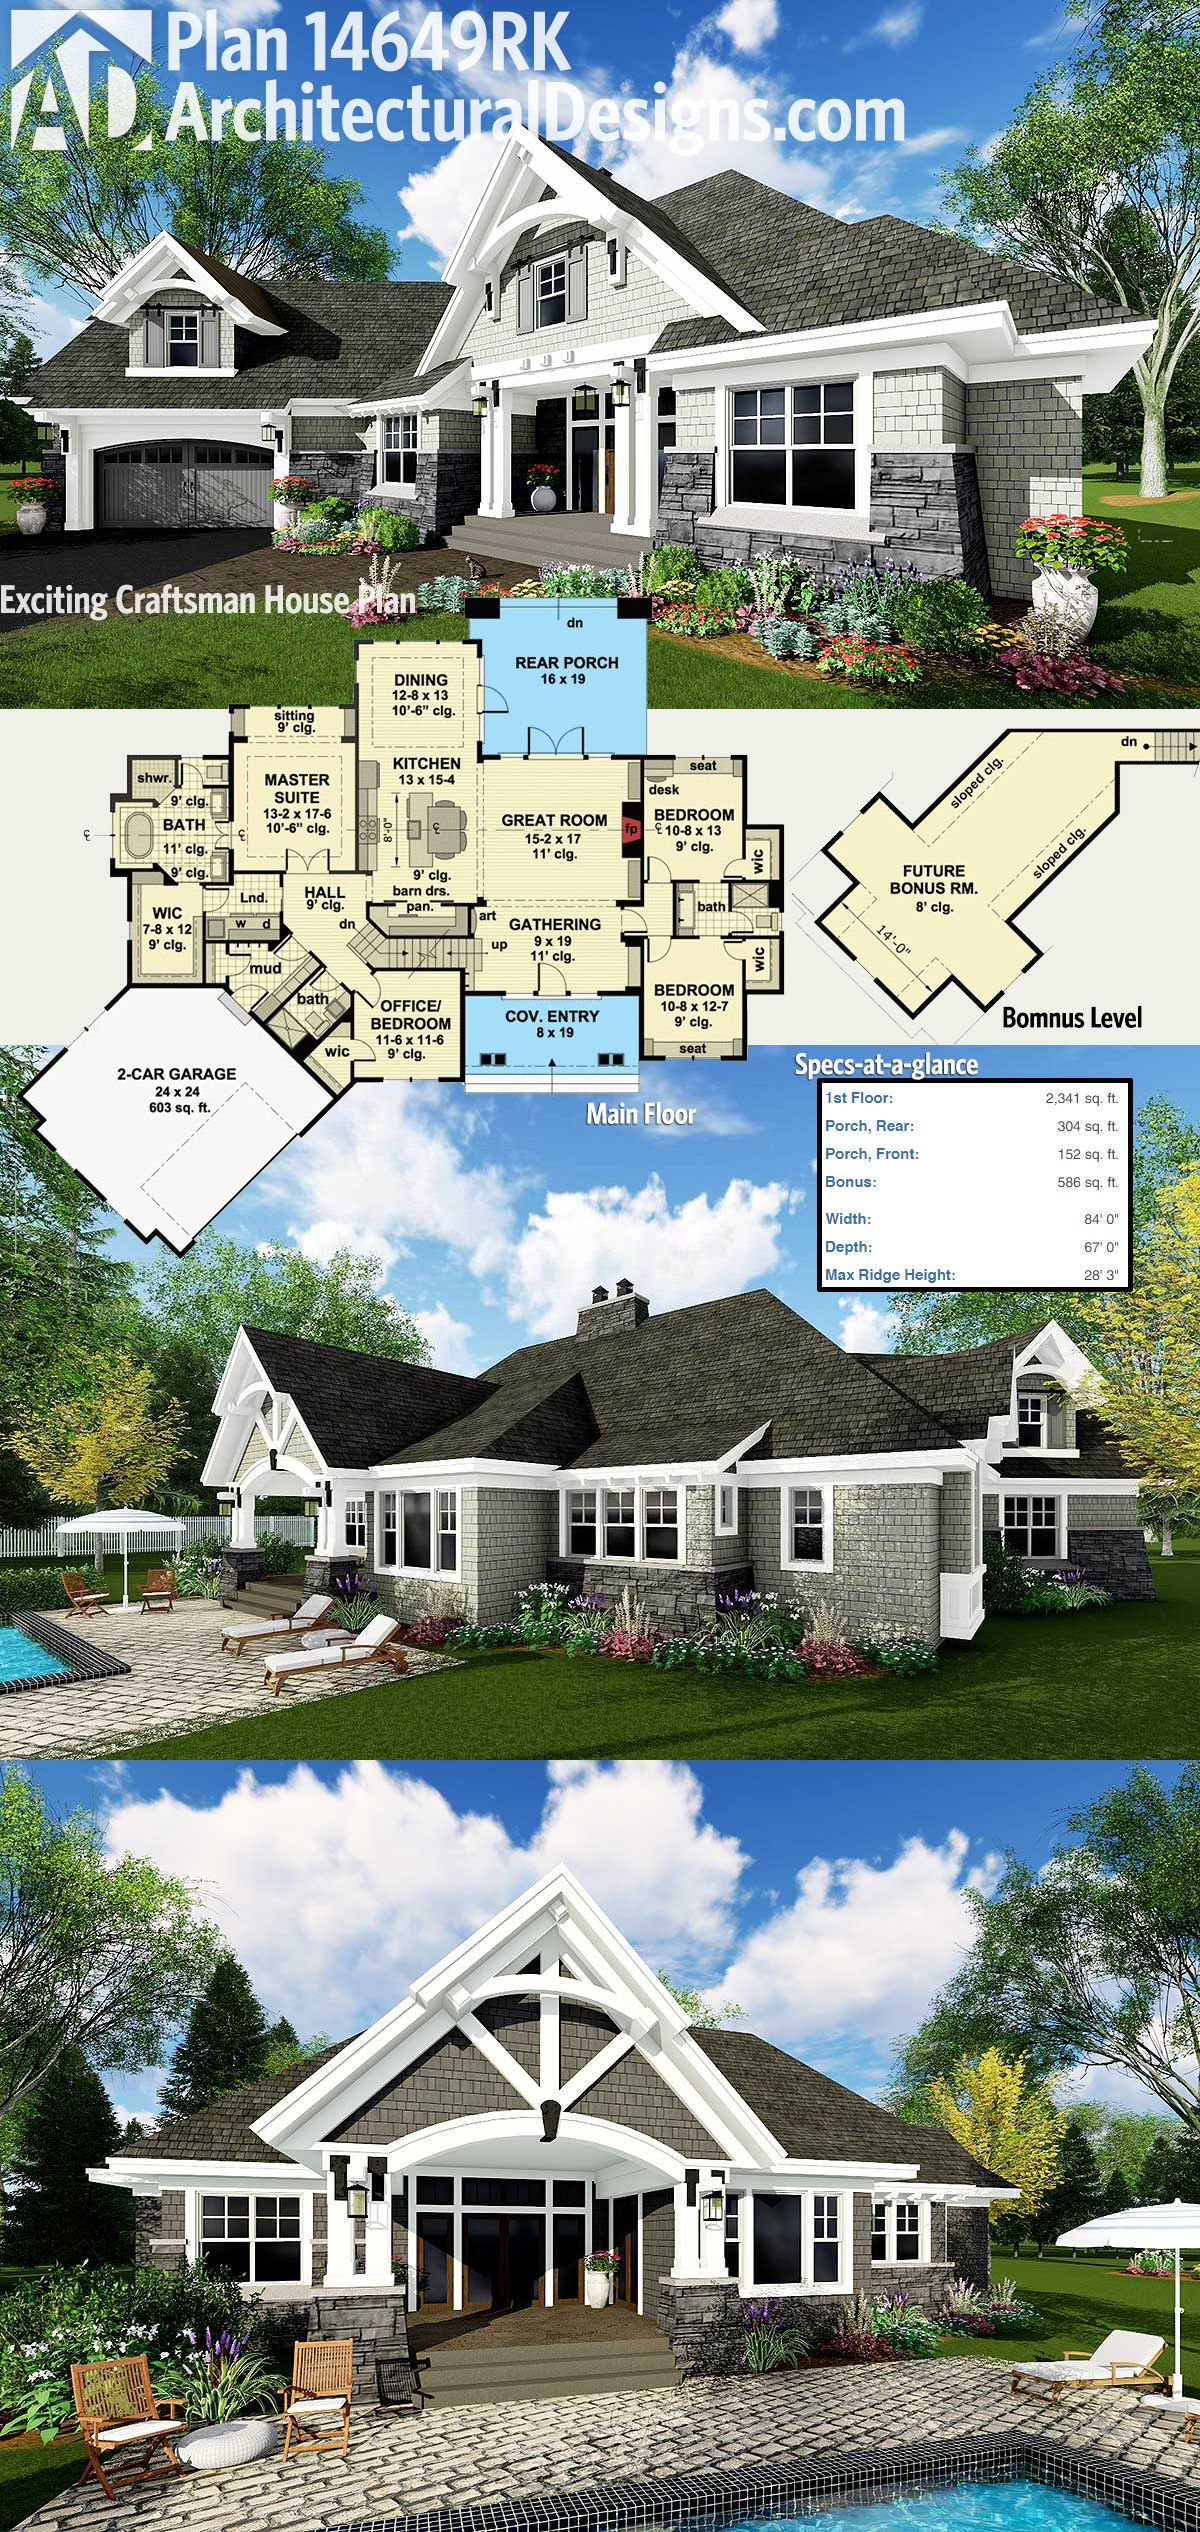 plan 14649rk exciting craftsman house plan outdoor living rooms architectural designs craftsman house plan 14649rk gives you over 2 300 square feet of heated living space